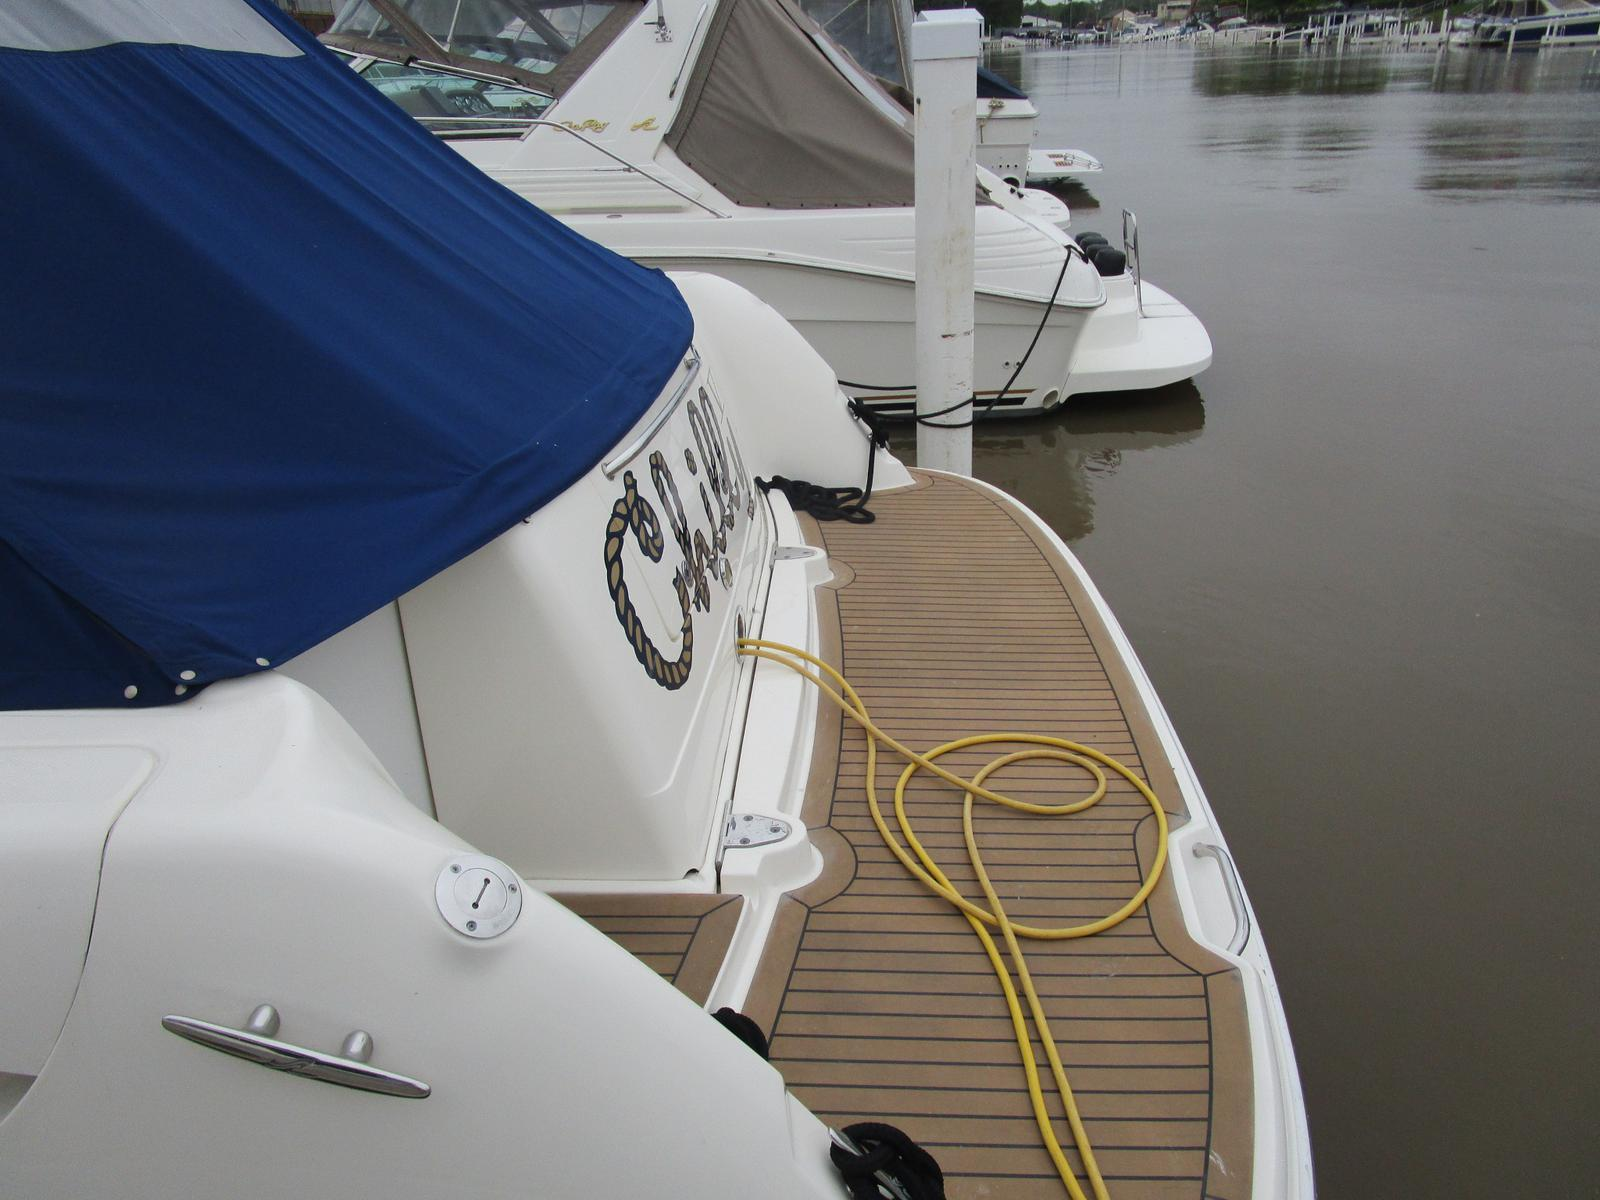 2010 Sea Ray boat for sale, model of the boat is 40 Sundancer & Image # 2 of 14